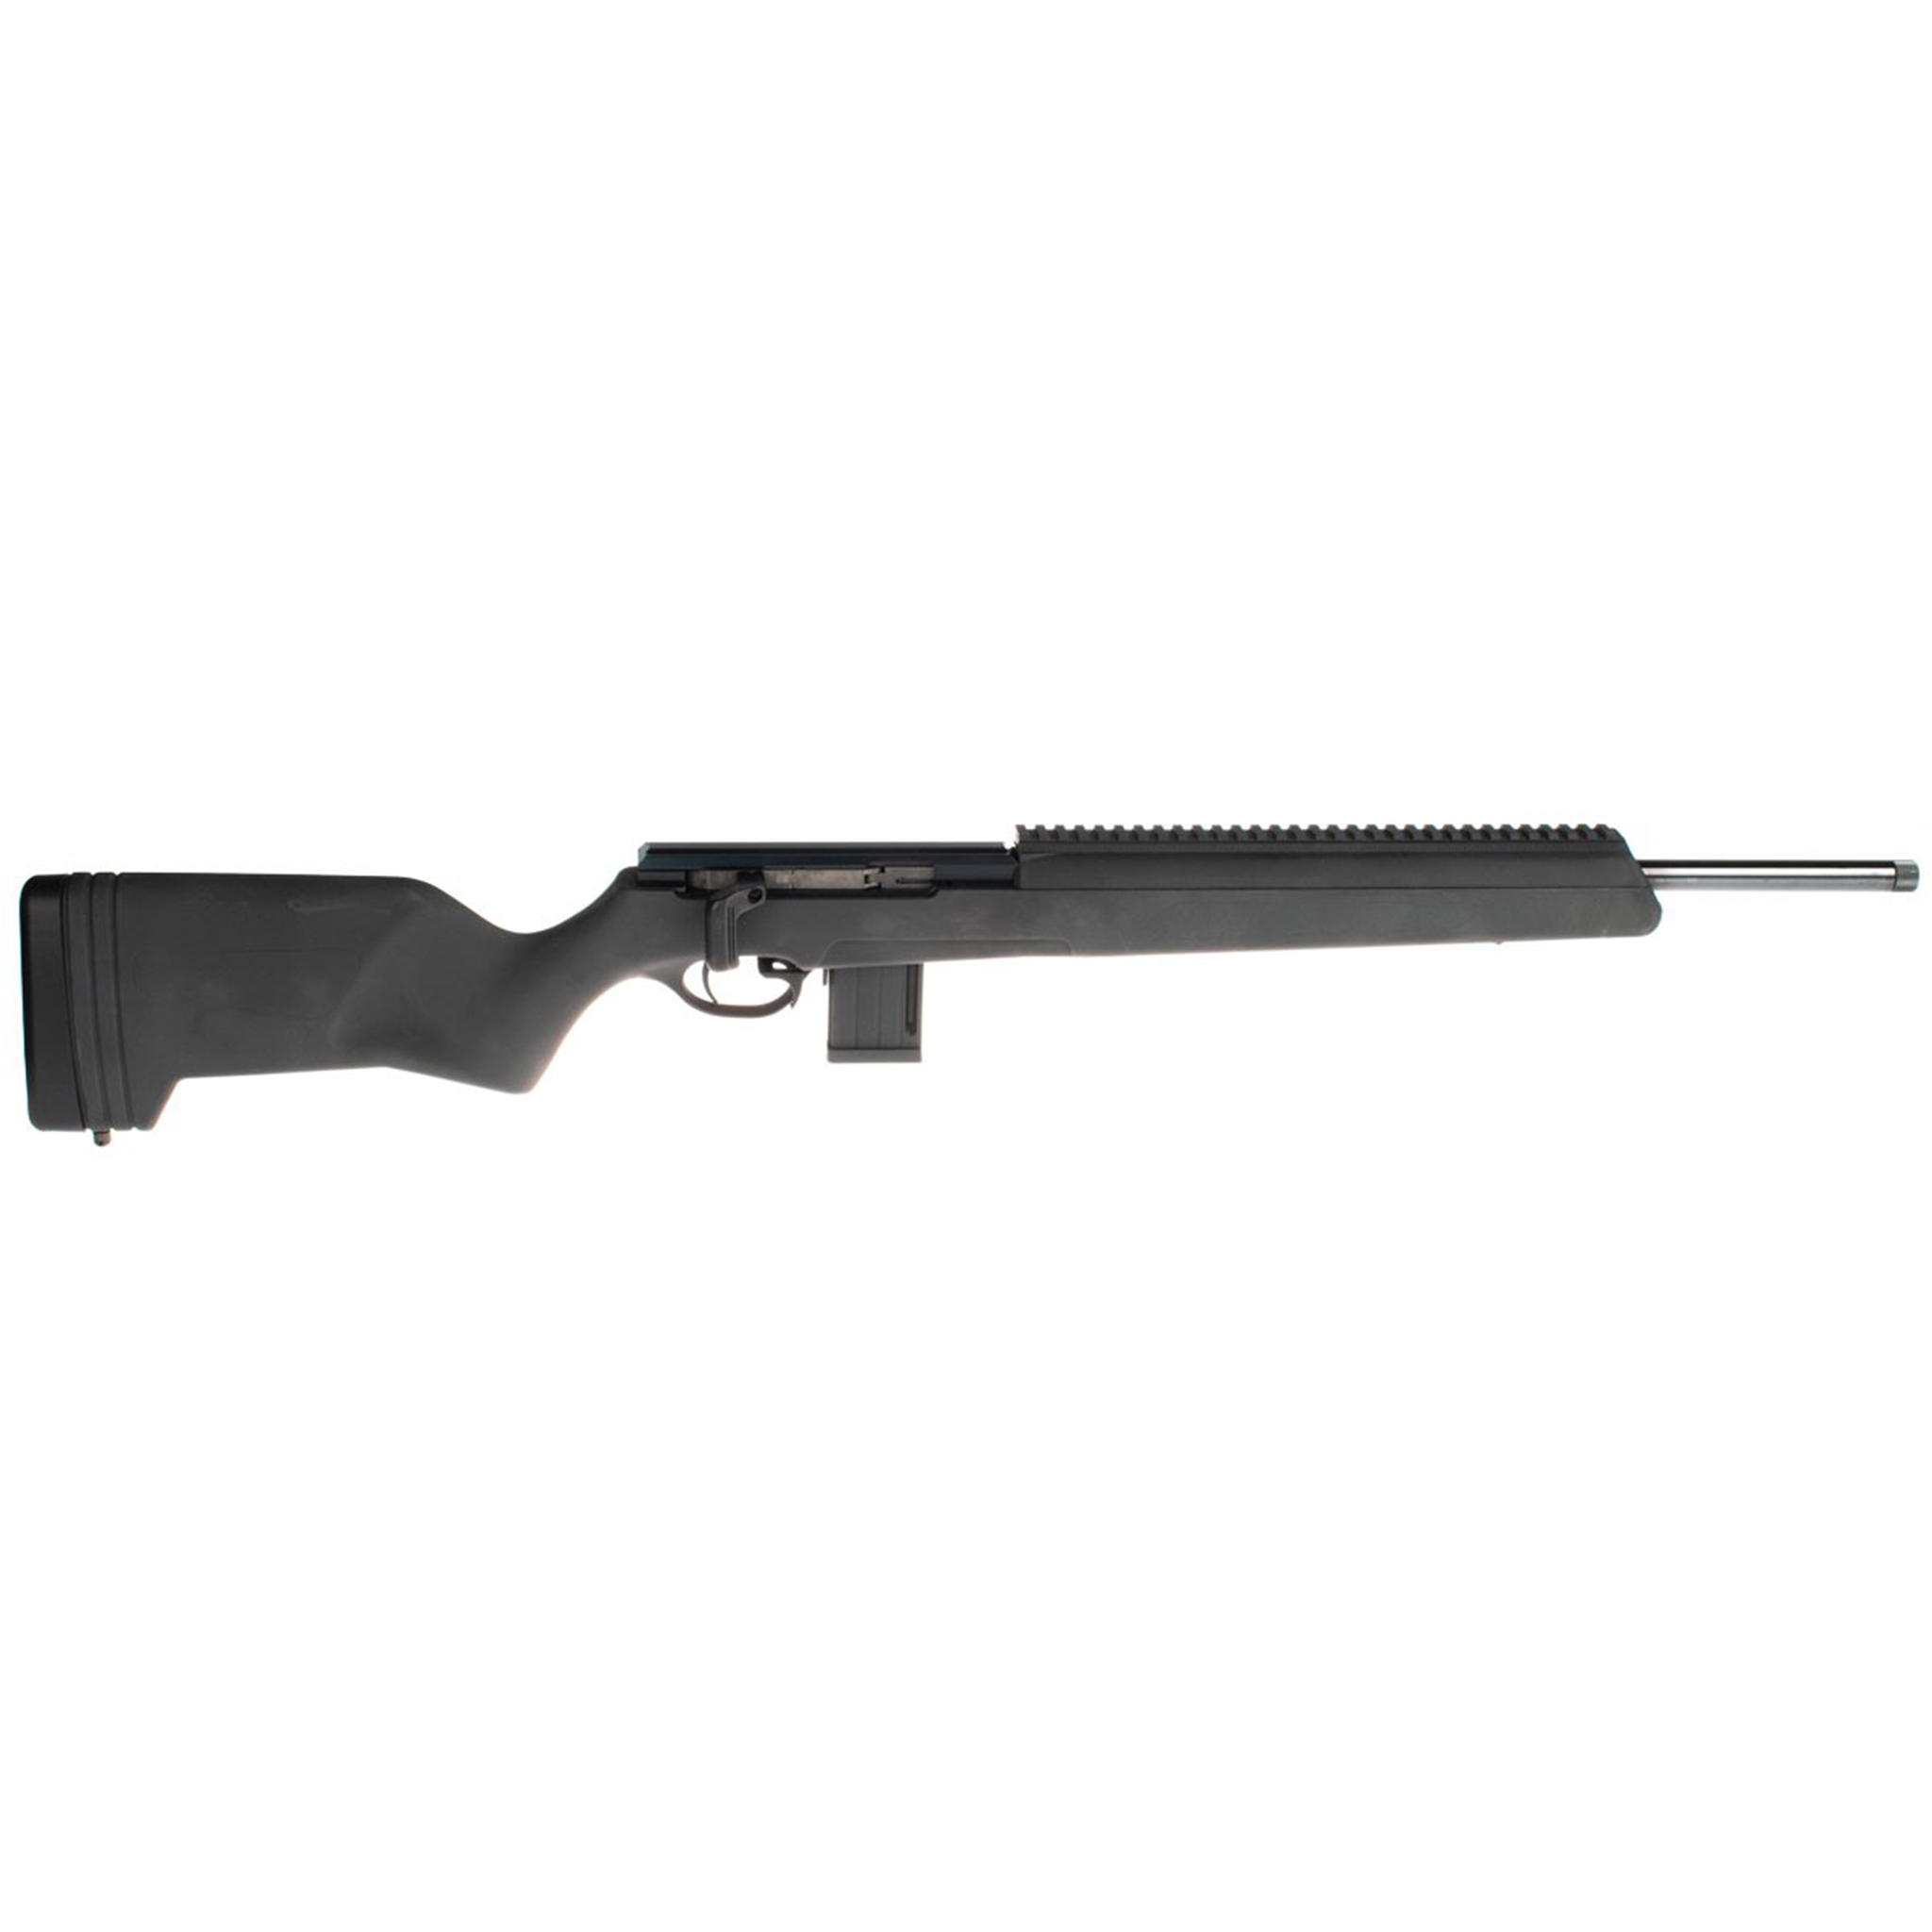 Steyr Scout RFR .22 LR Straight Pull Bolt Action